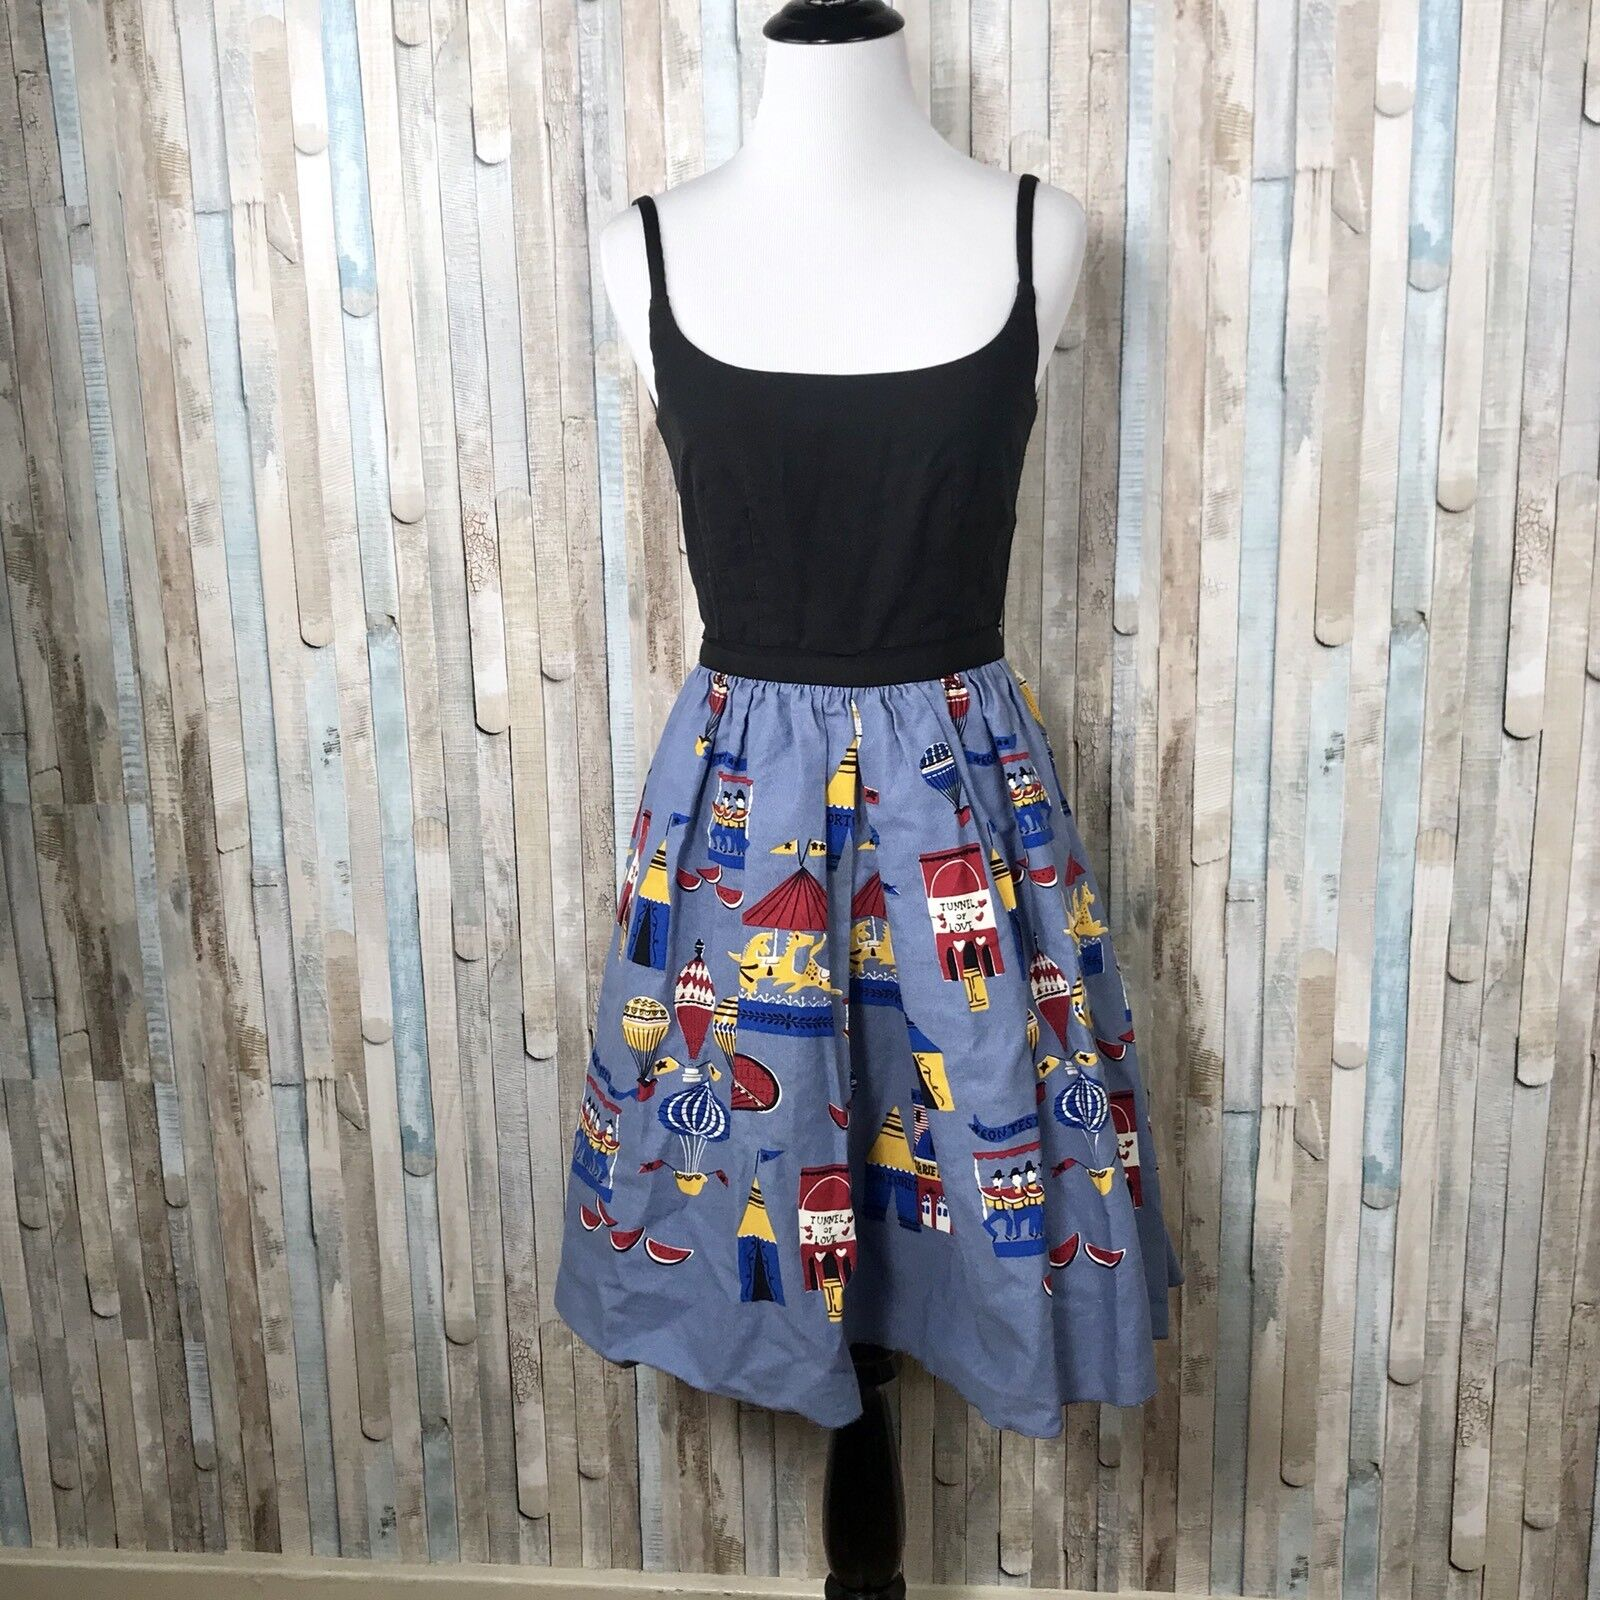 Anthropologie 0 Anna Sui Fit Flare Carnival Novelty Print County Fair Tank Dress